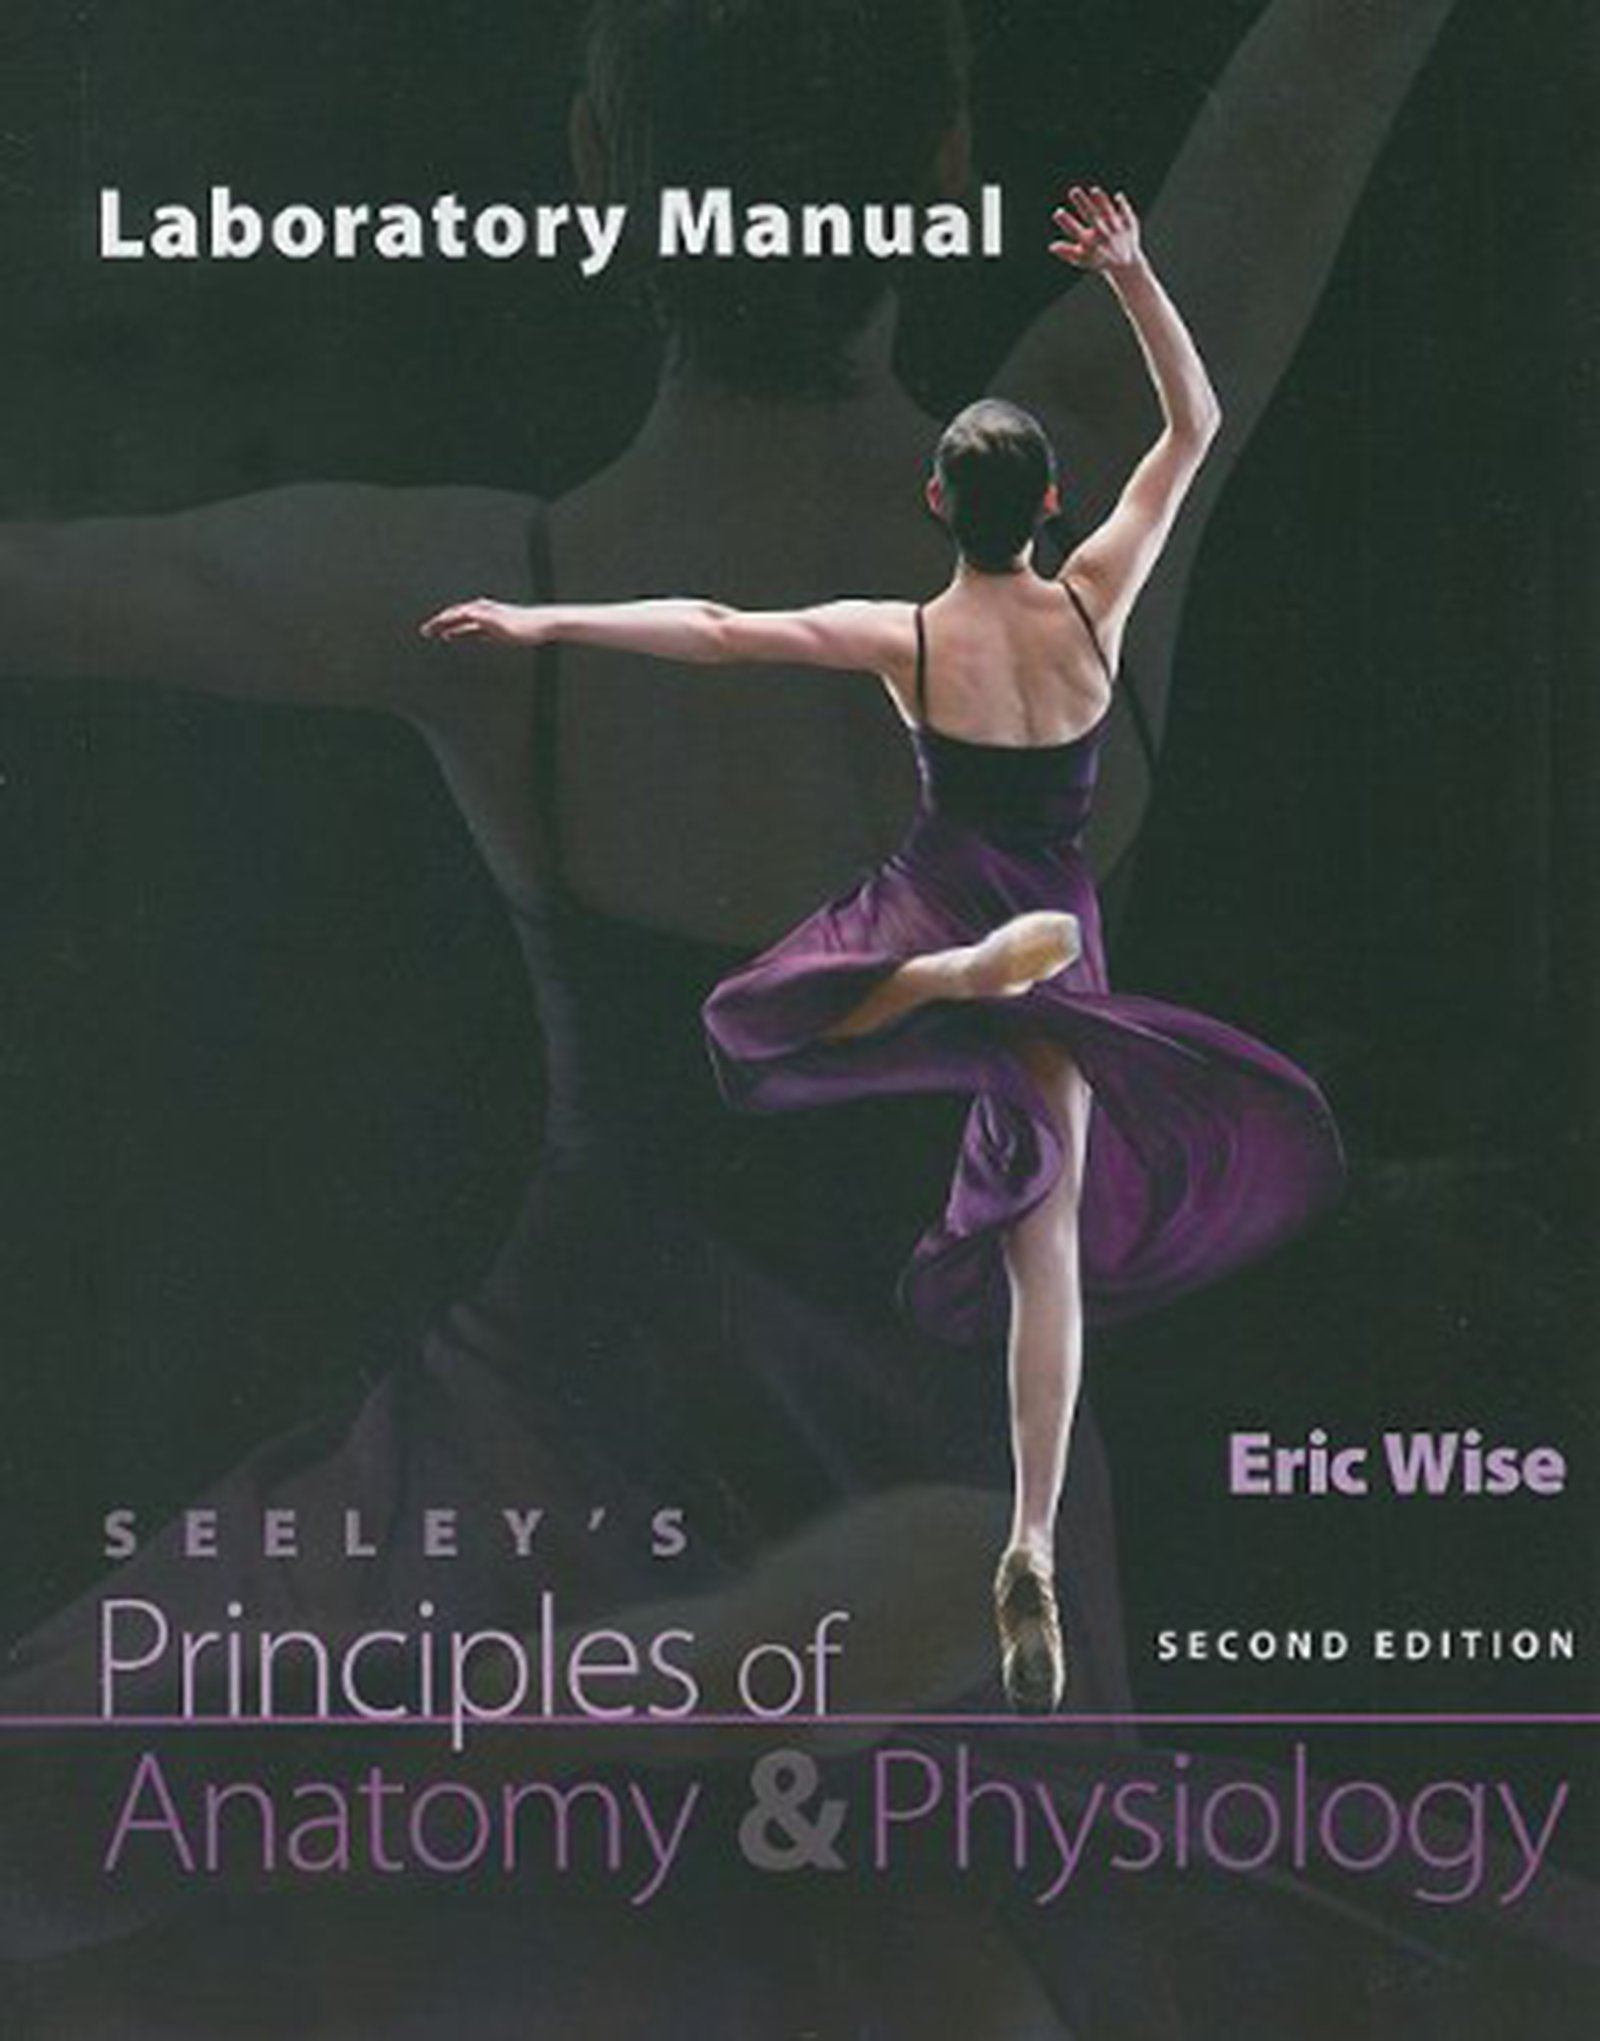 Principles of Anatomy and Physiology: Eric Wise: 9780077351281: Amazon.com:  Books